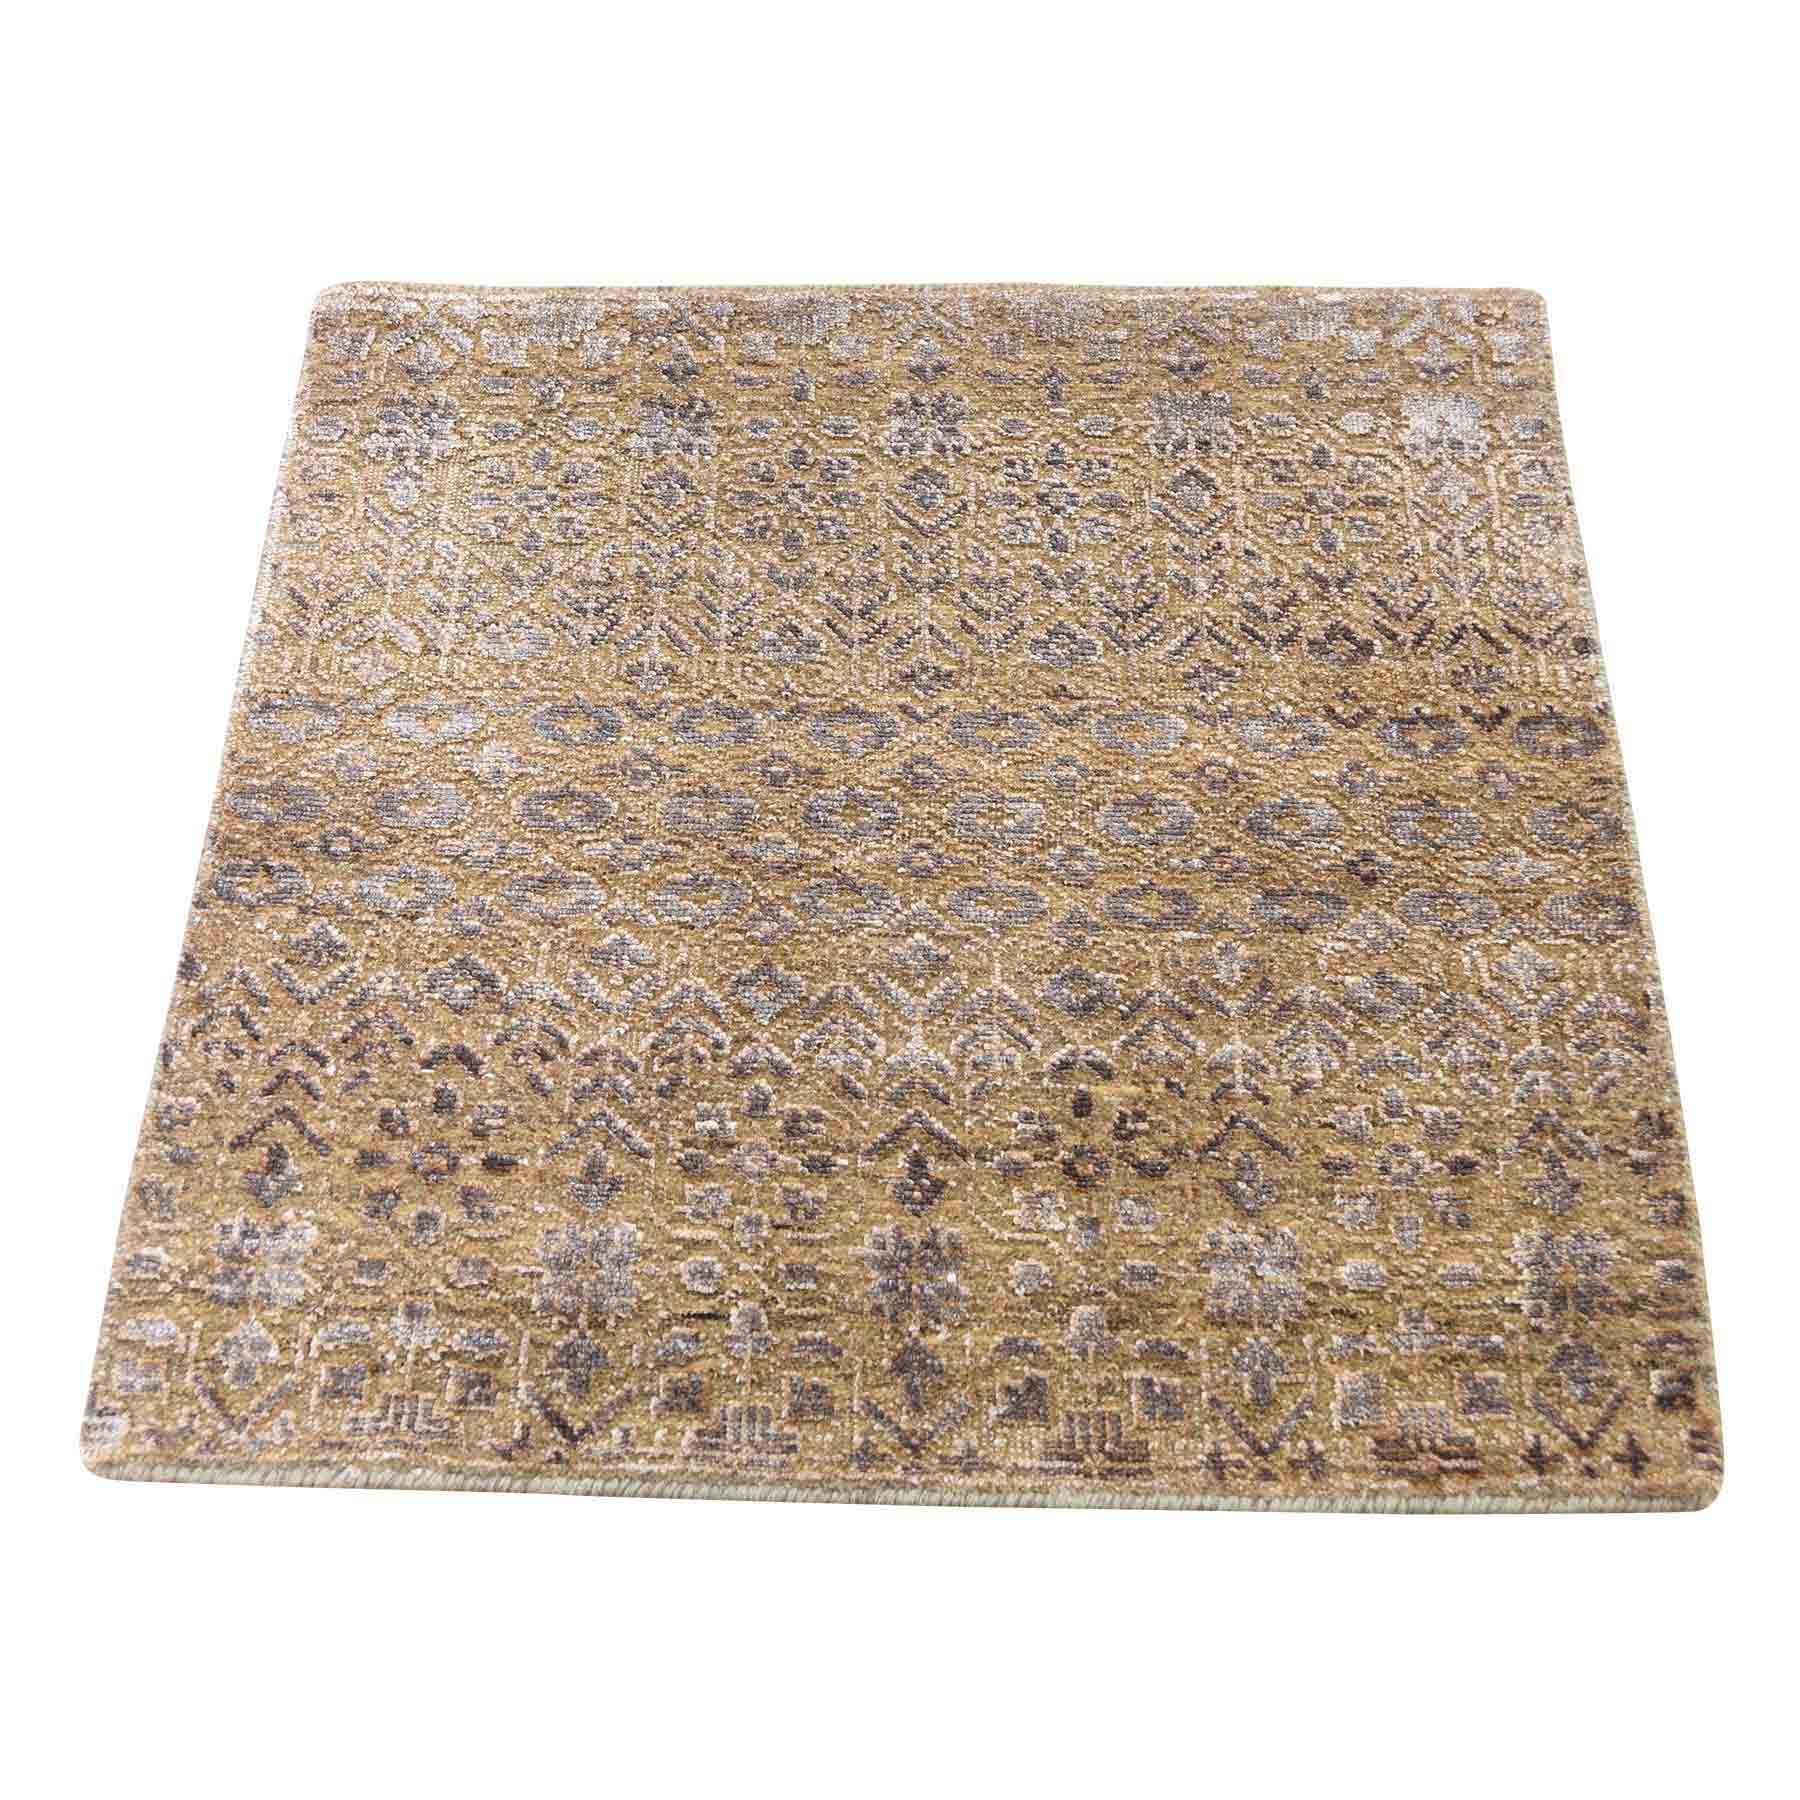 Wool-and-Silk-Hand-Knotted-Rug-222860